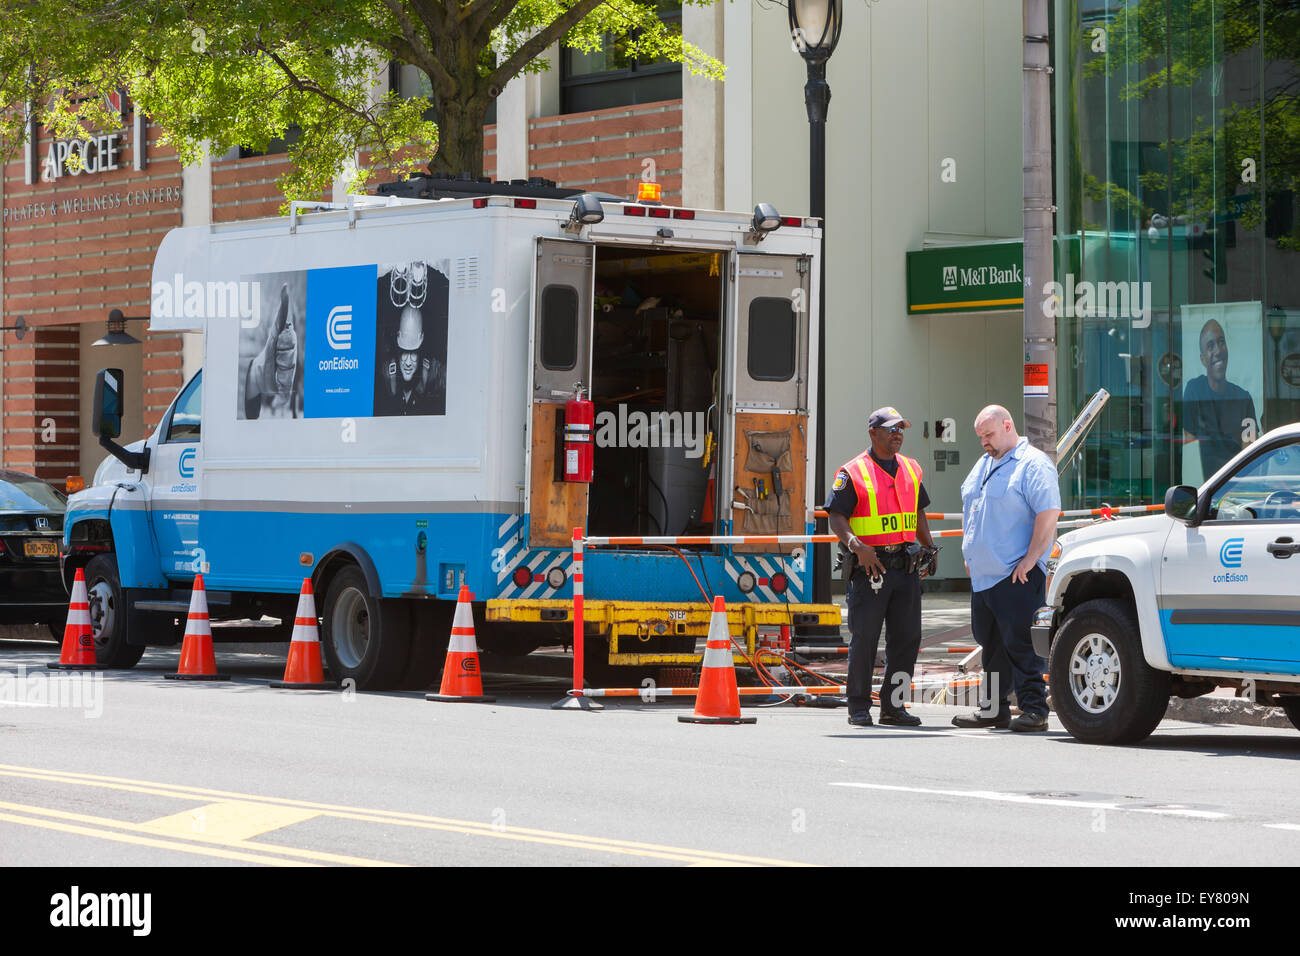 A Con Edison maintenance and repair truck on a street in White Plains, New York. - Stock Image